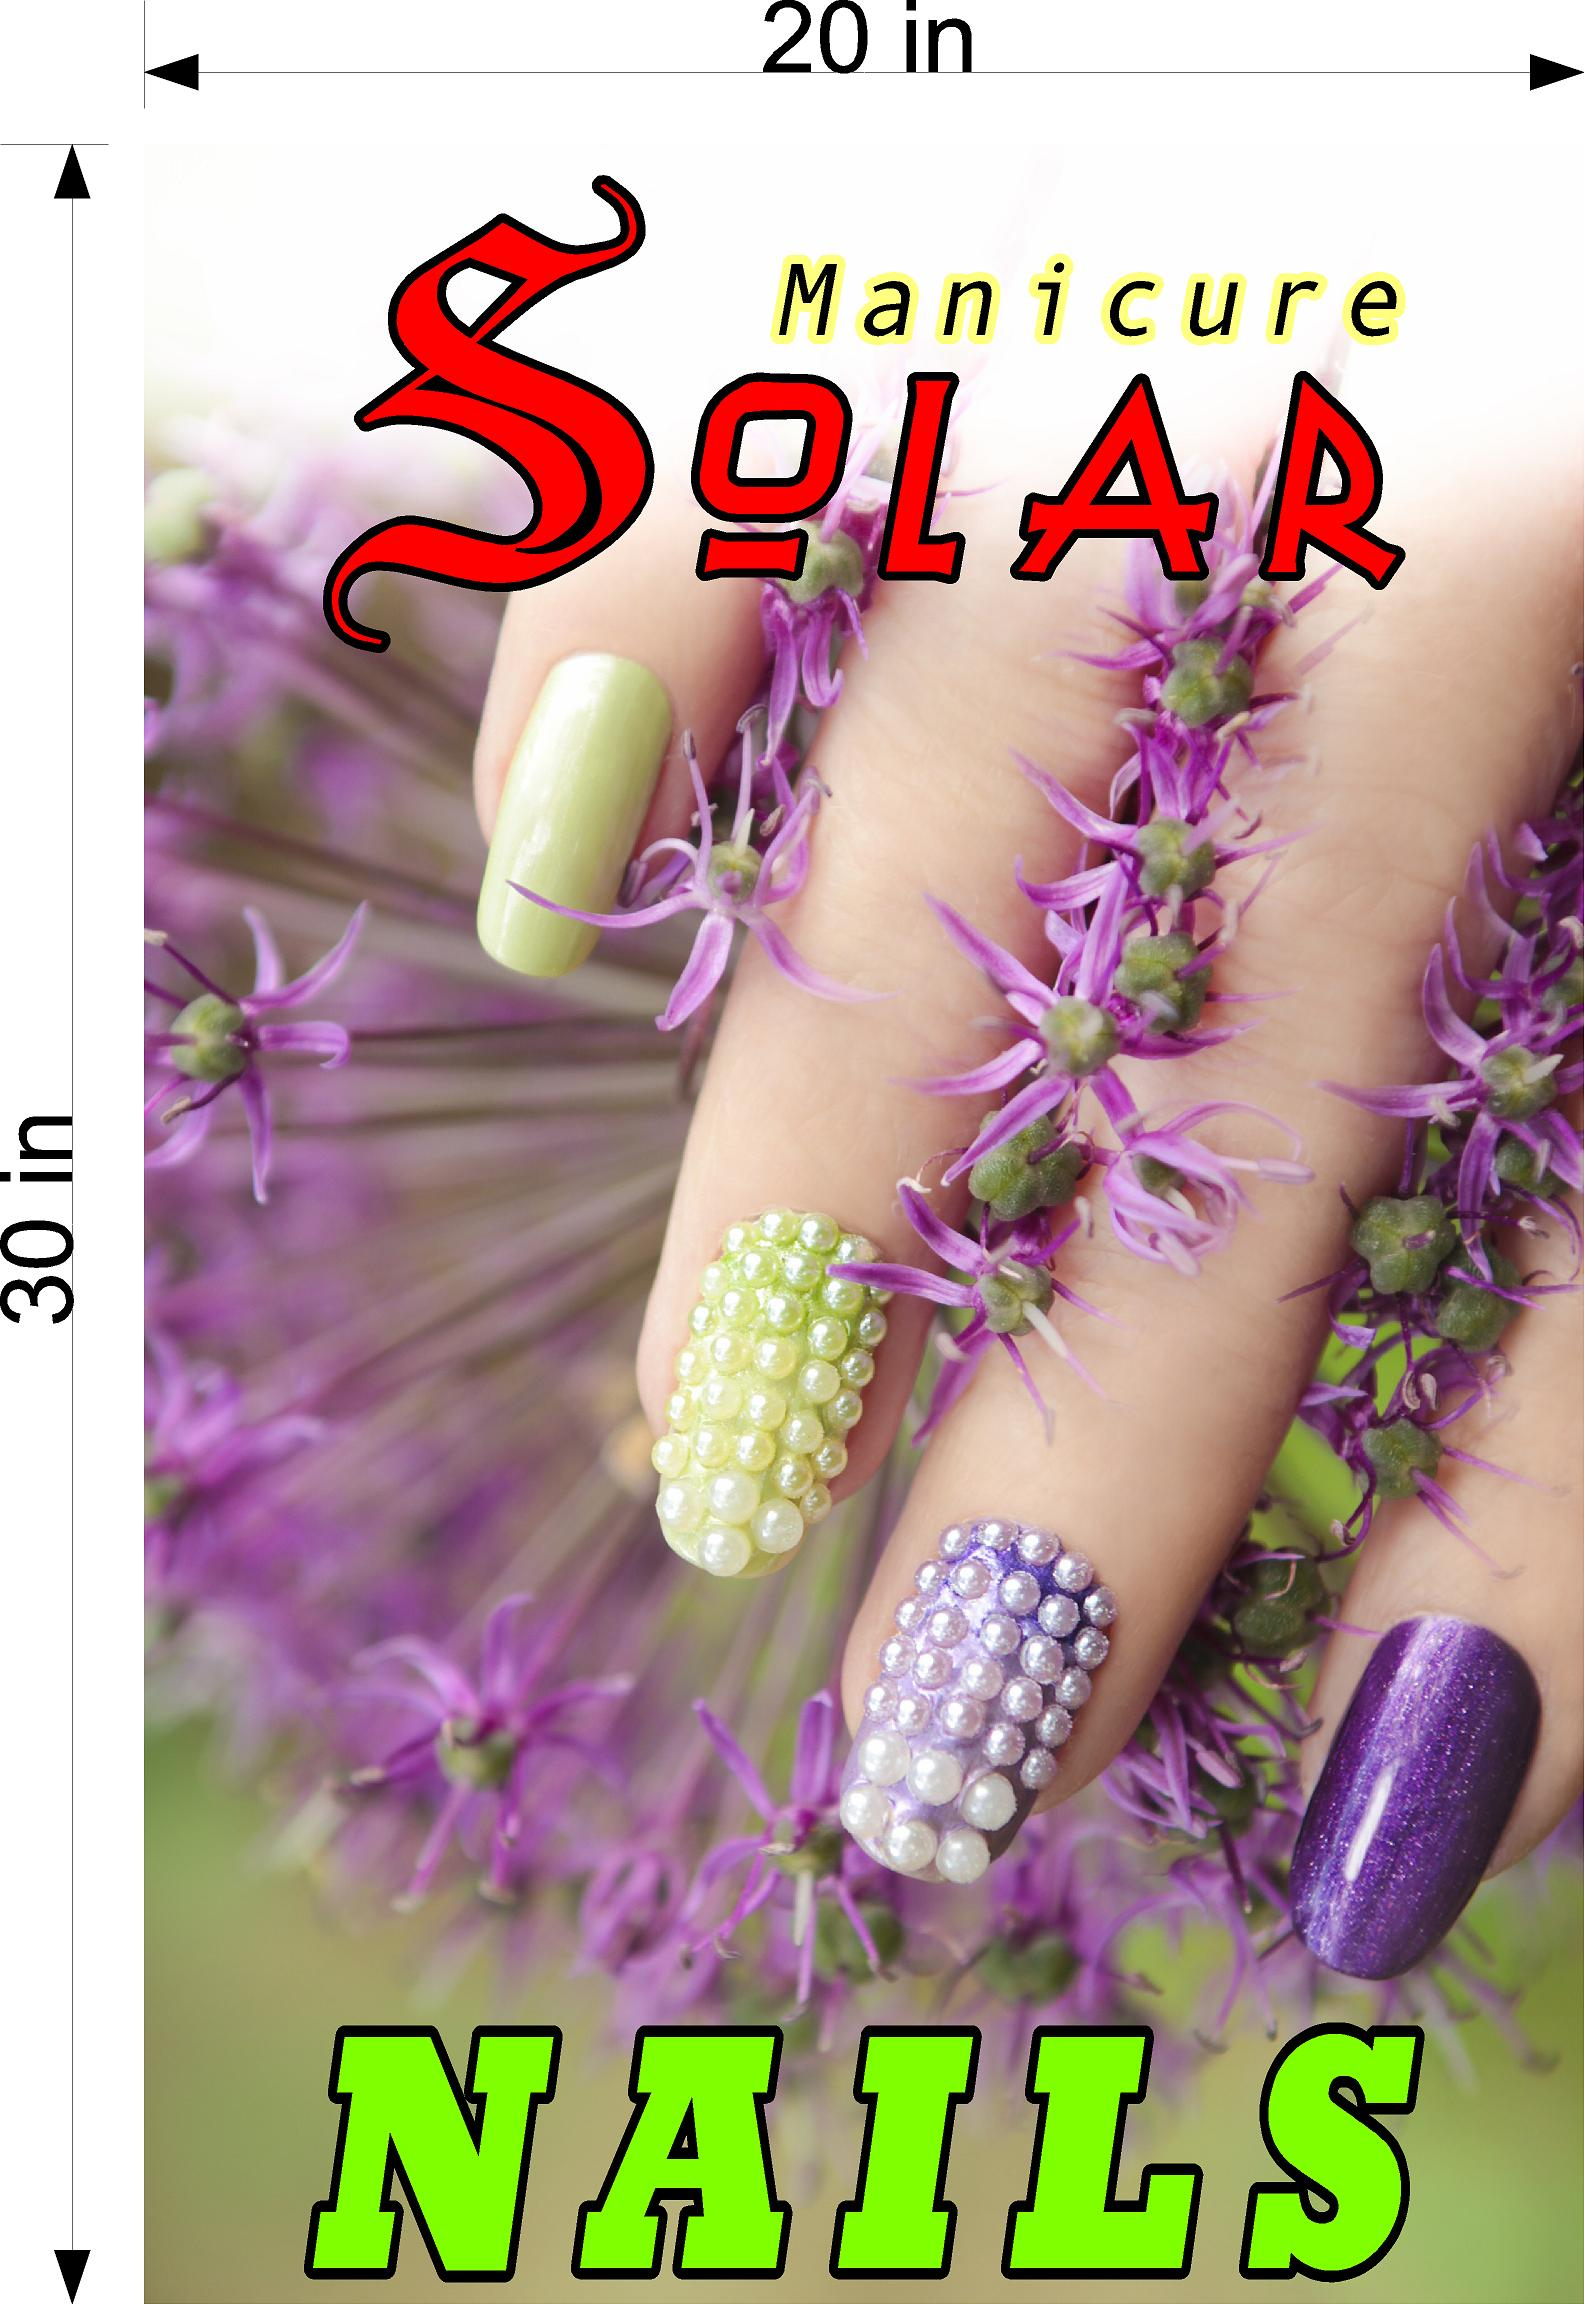 Solar 03 Perforated Mesh One Way Vision See-Through Window Vinyl Nail Salon Sign Vertical